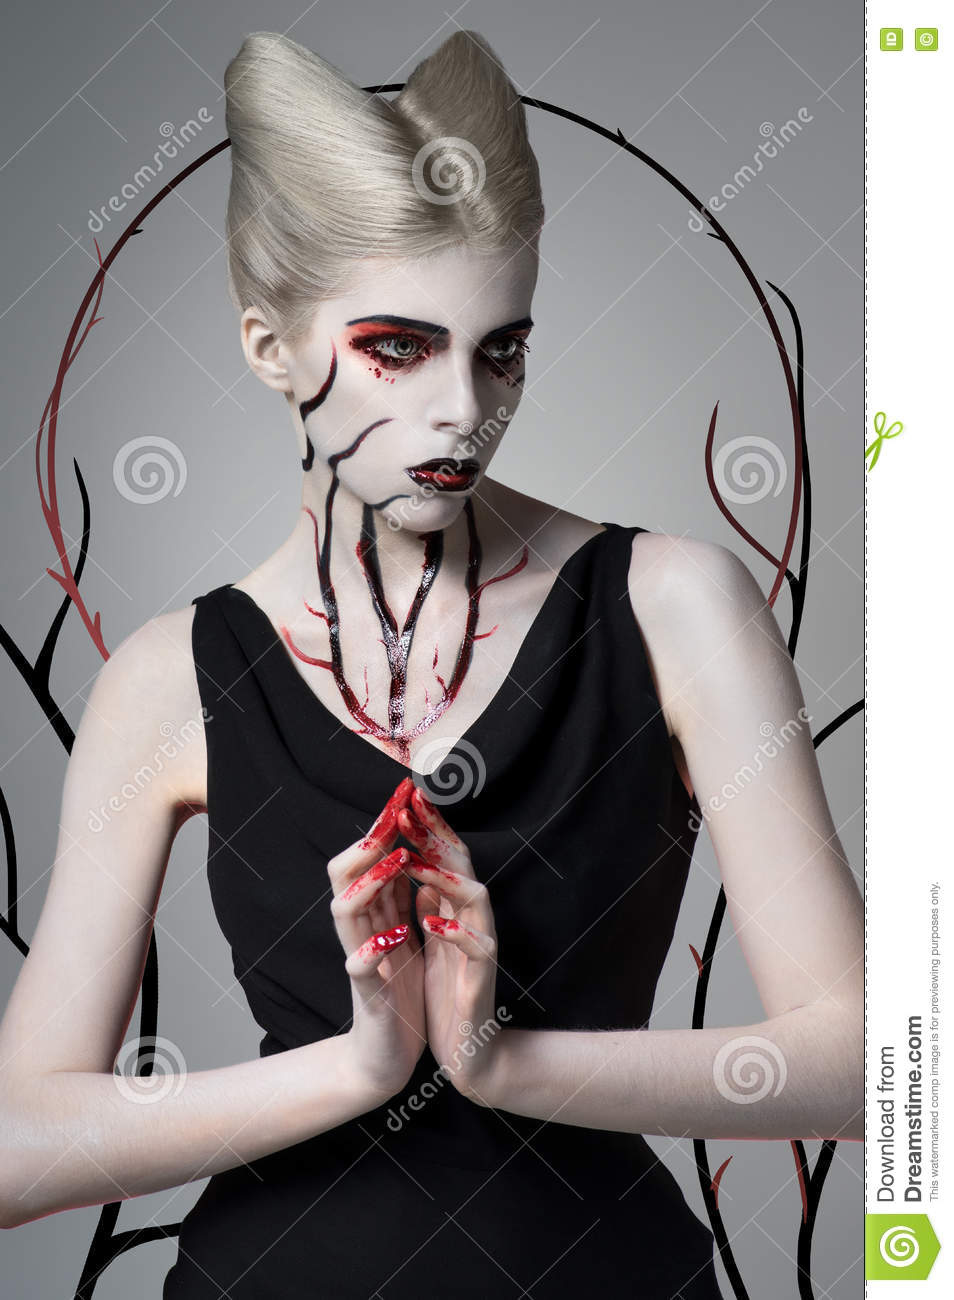 Scary girl with bloody body art